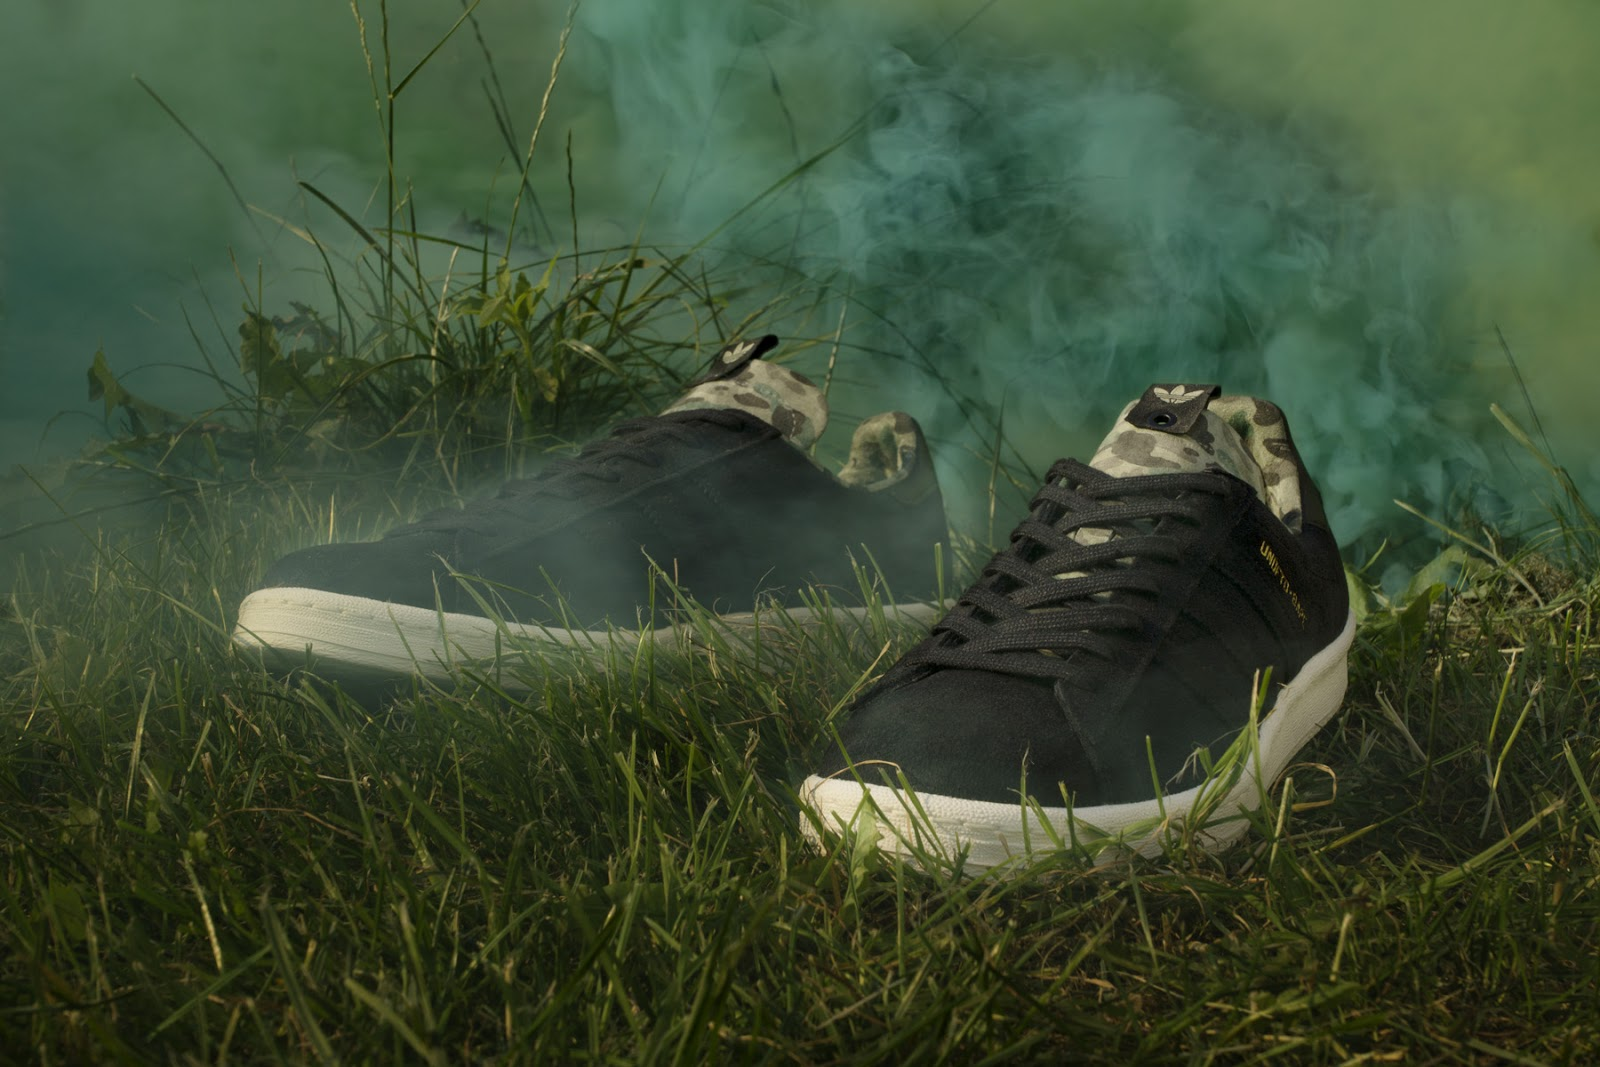 d22f0ceafea0 BAPE and UNDFTD have been working with adidas originals on opposite sides  of the world since the respective launches of both seminal streetwear  brands. with ...